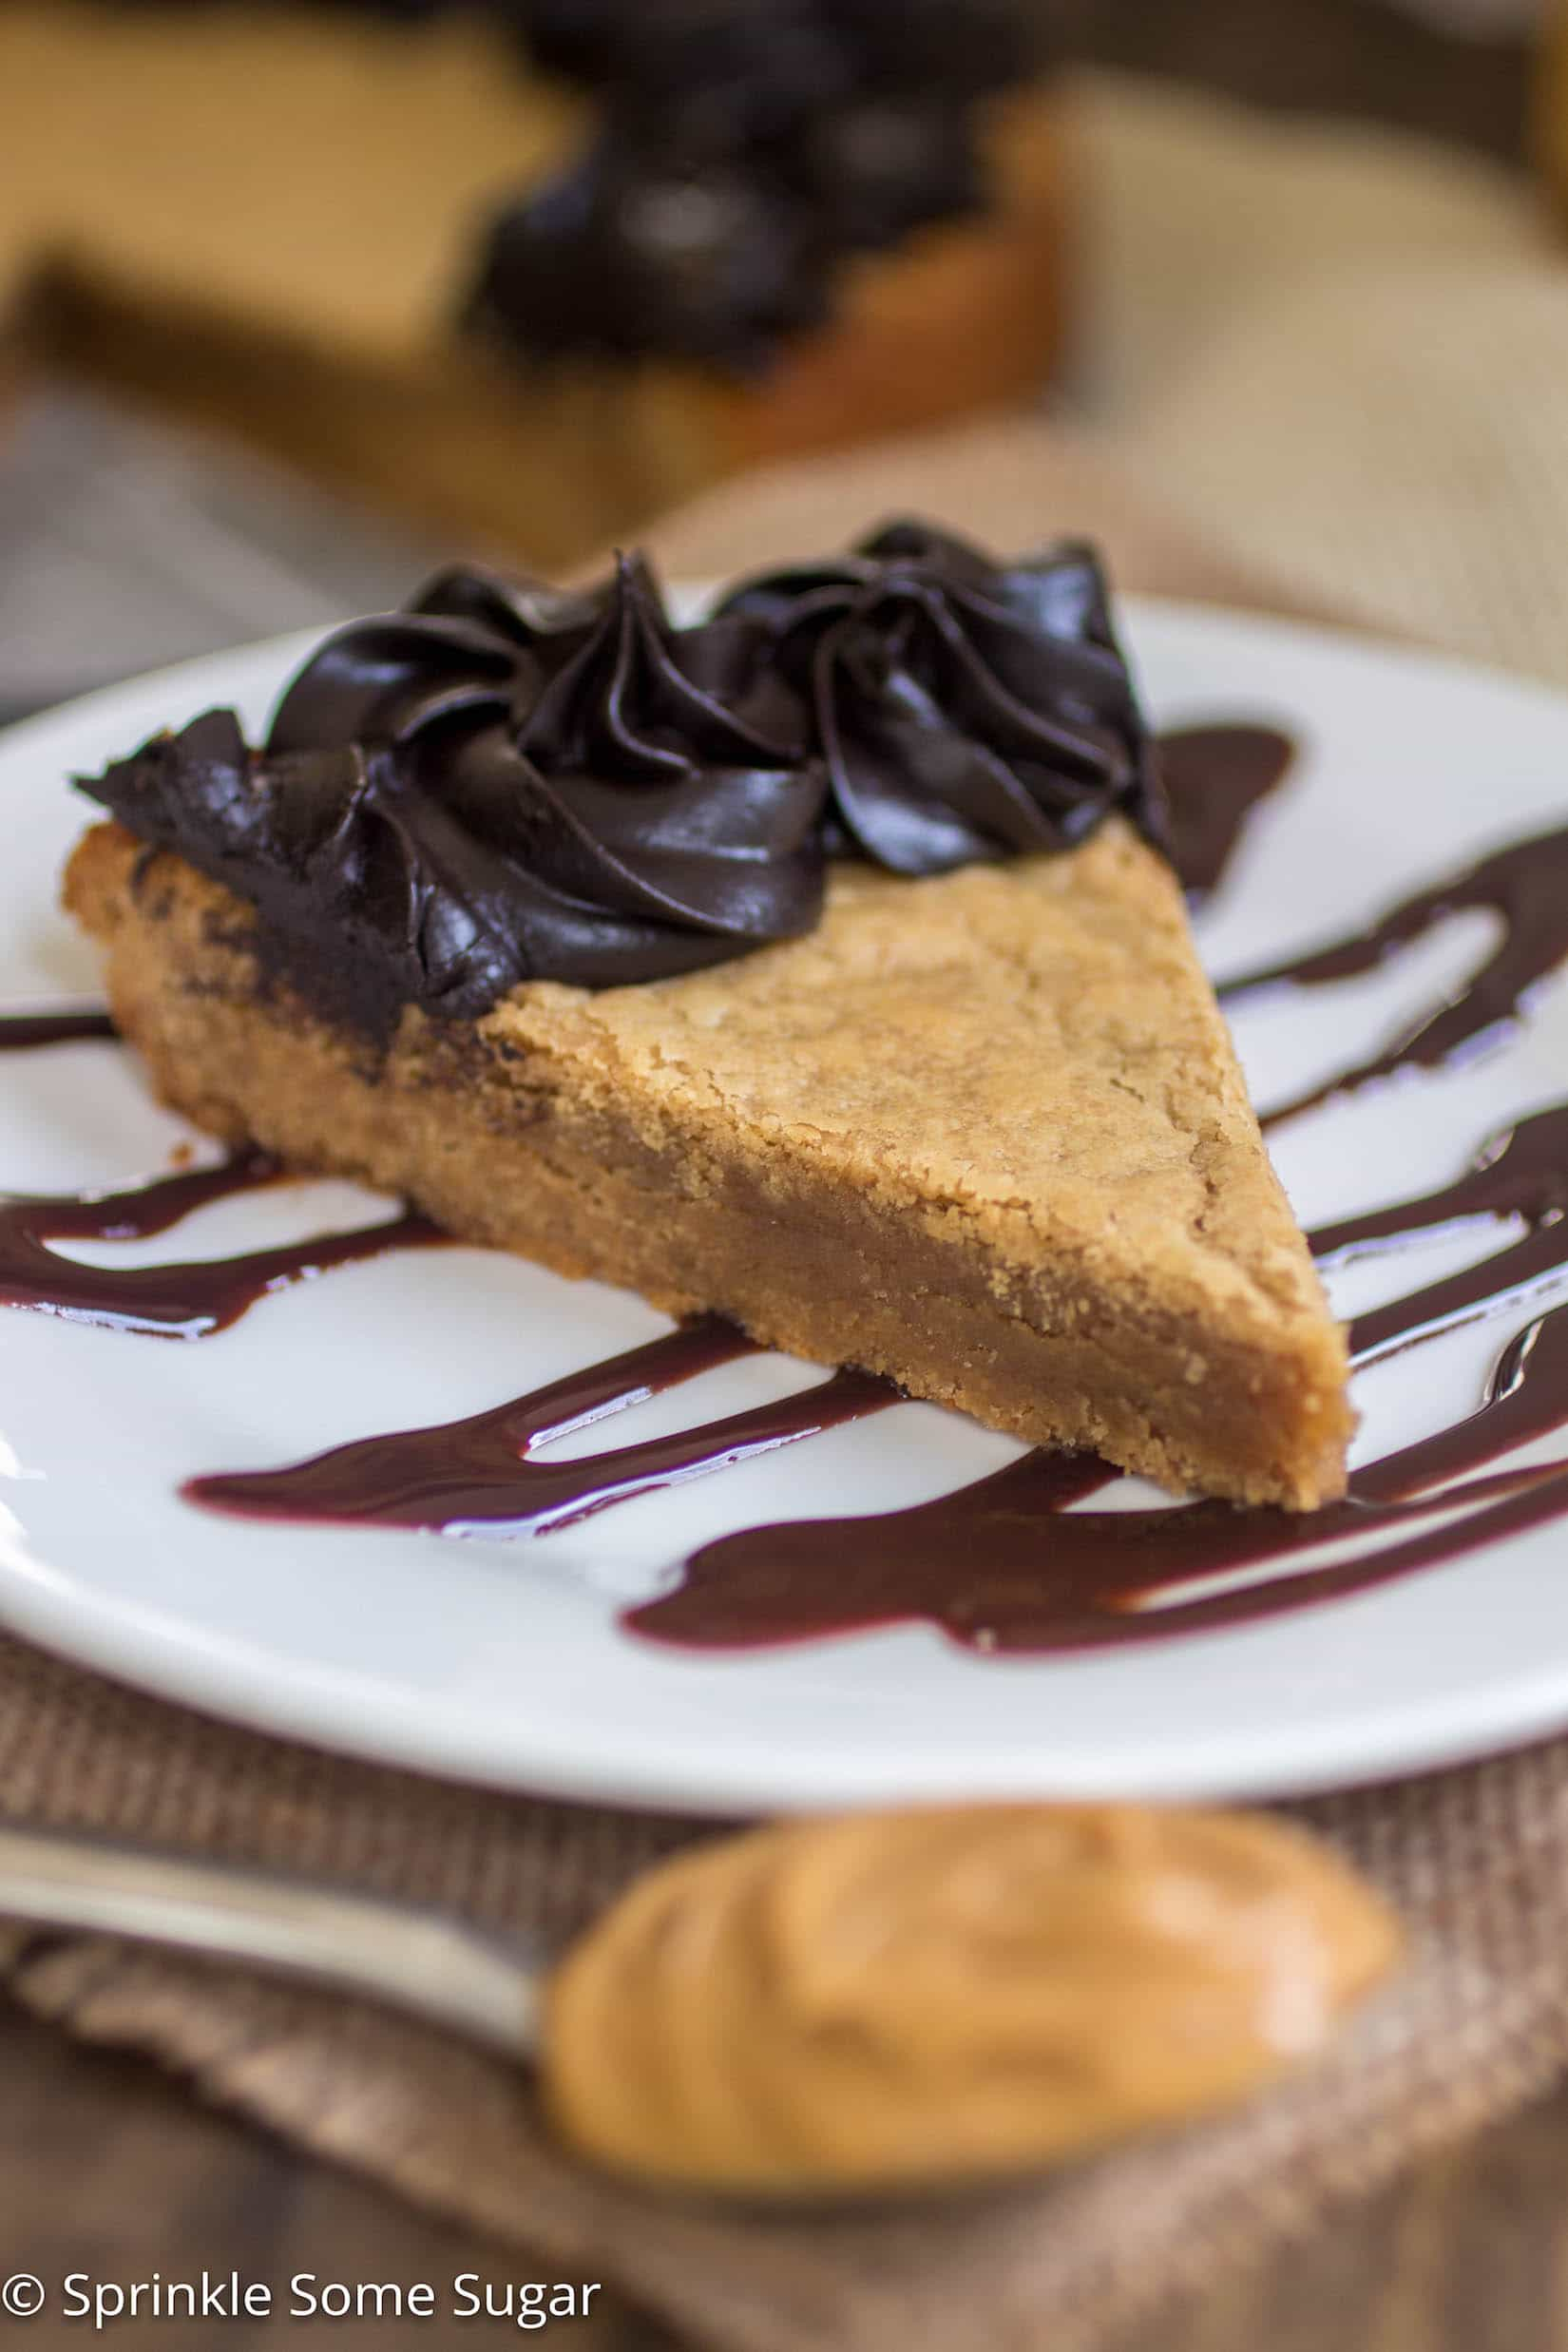 Peanut Butter Cookie Cake - A thick, chewy peanut butter cookie cake topped with a creamy dark chocolate frosting.